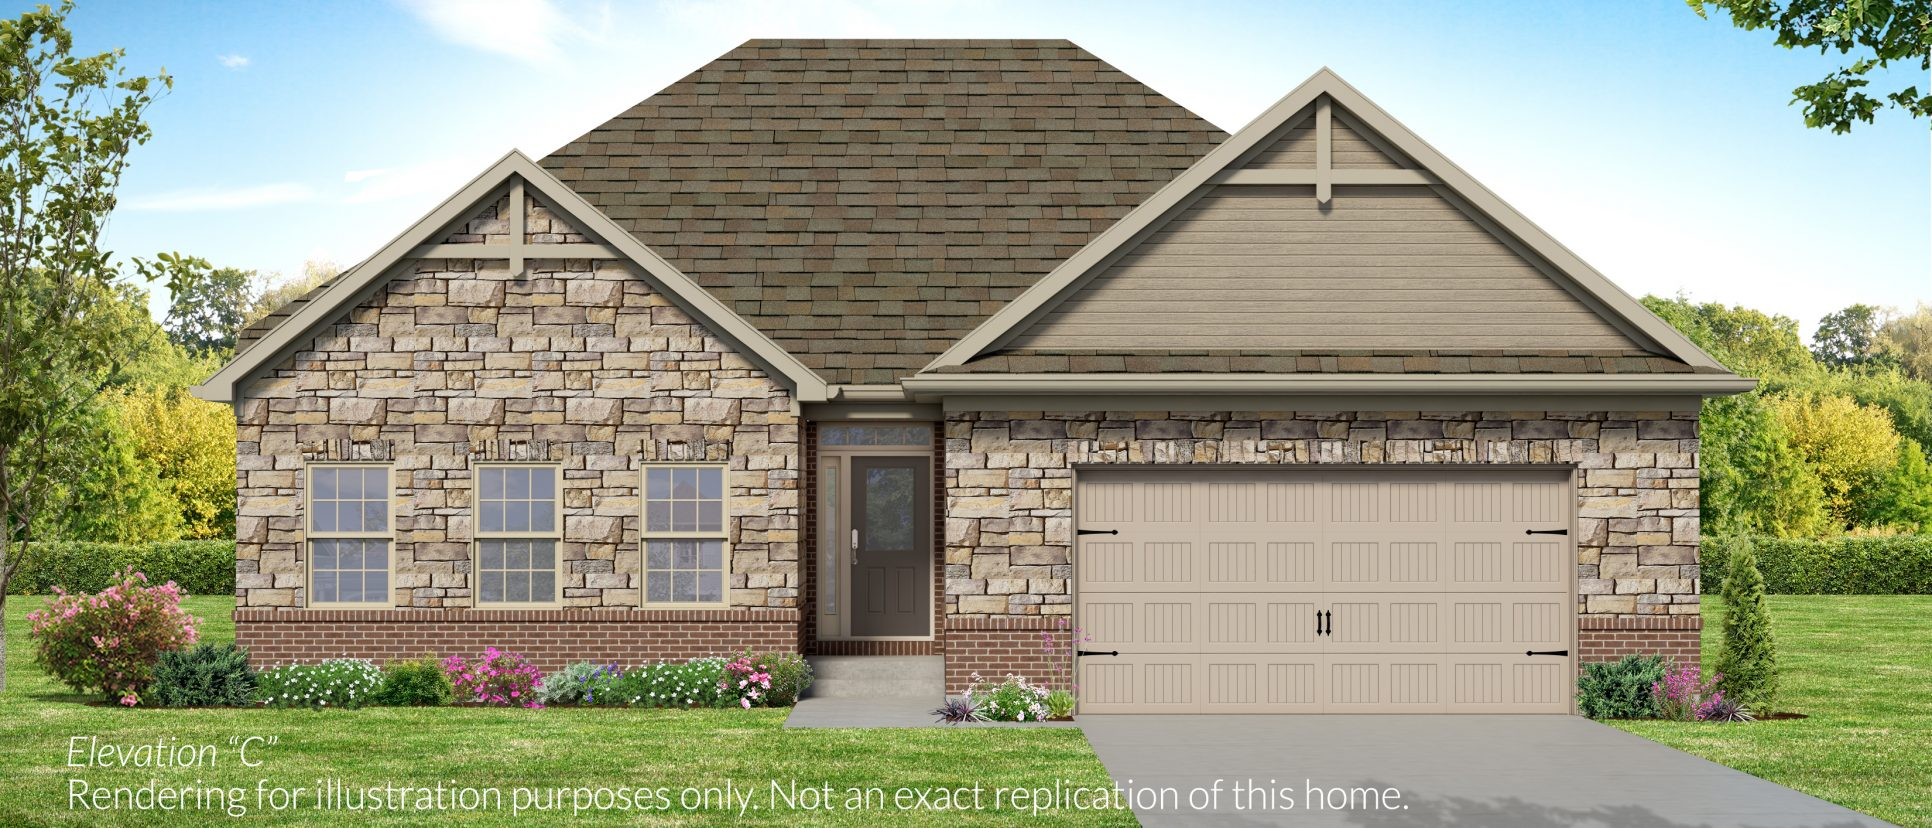 Custom exterior of the standard Jackson. A standard plan by Design Homes and Development.